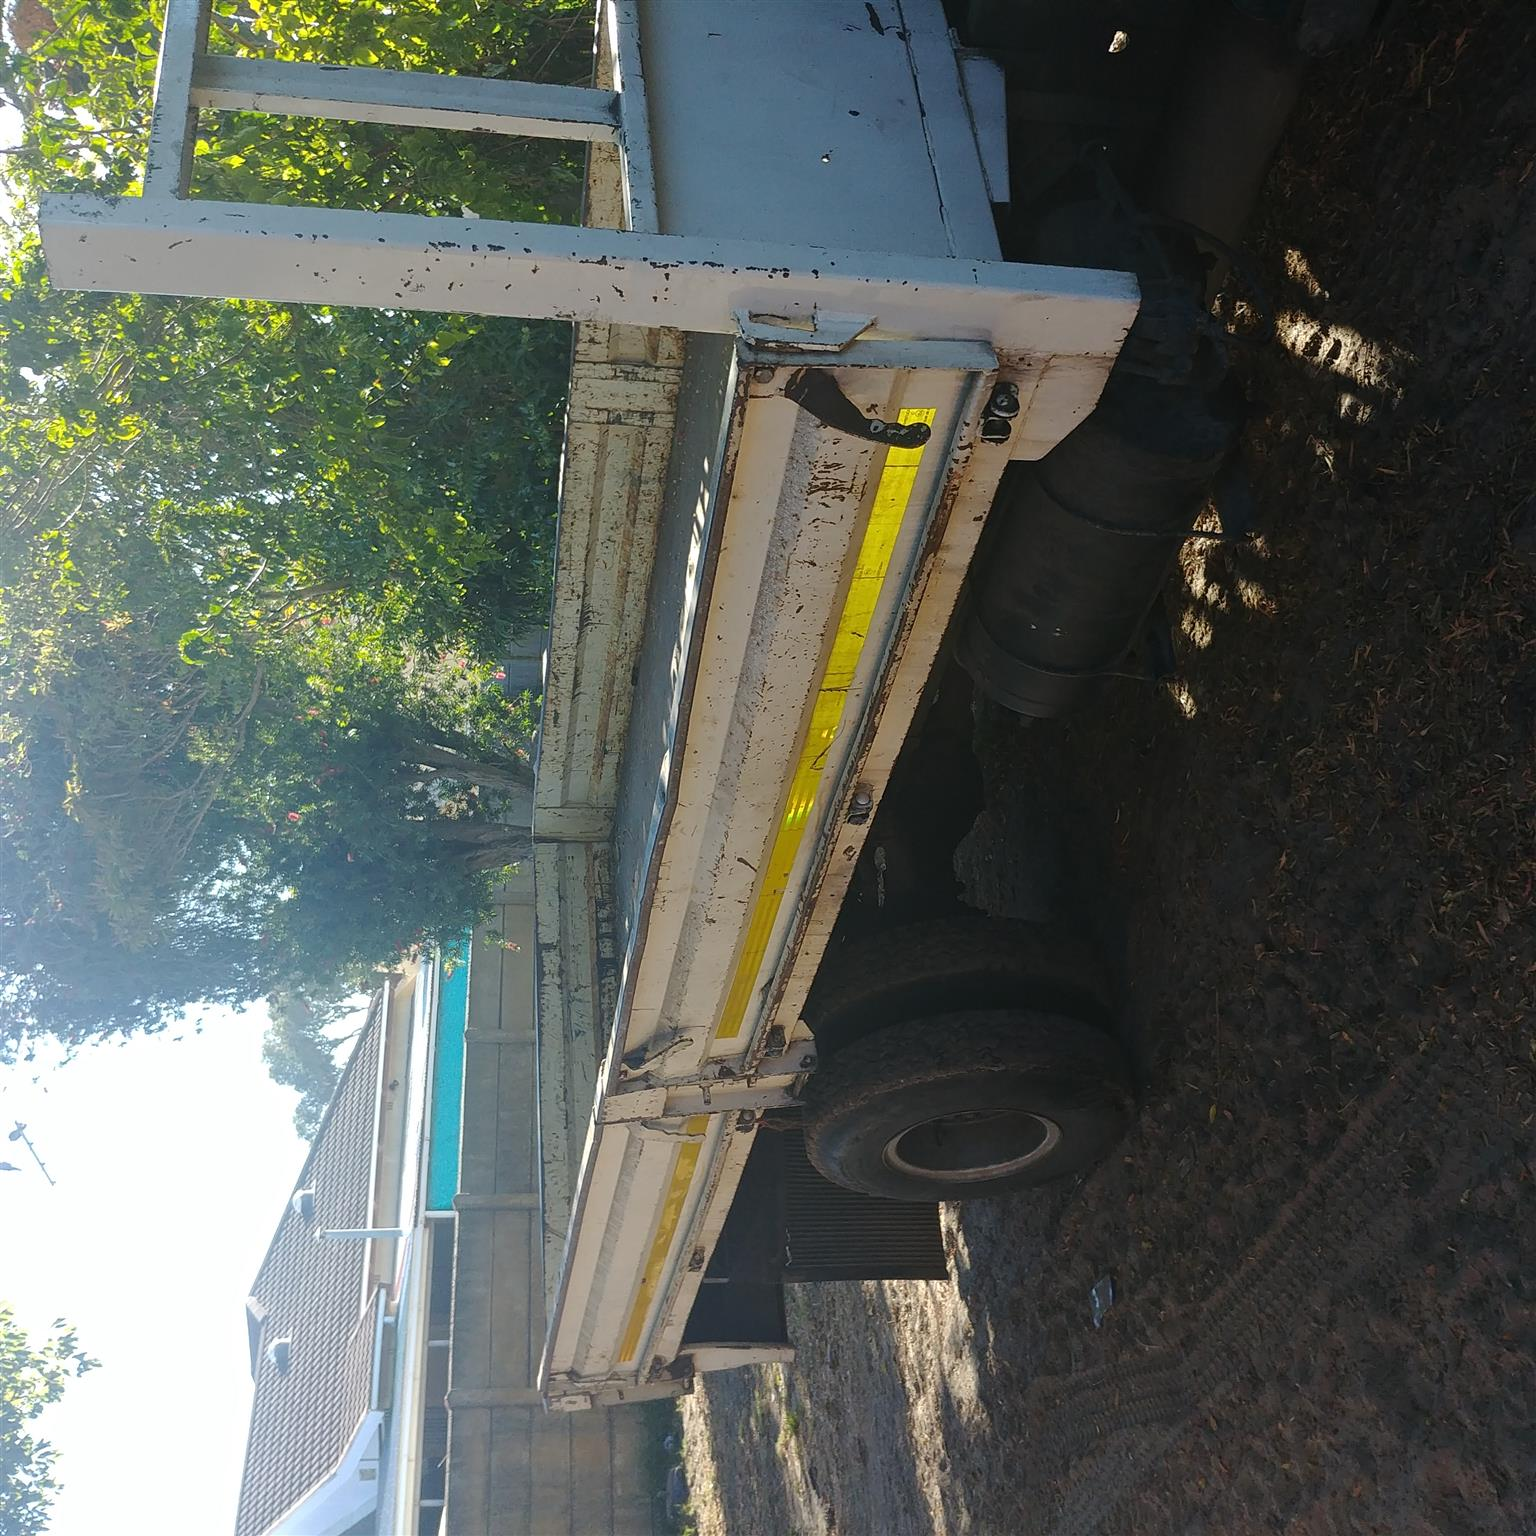 5ton truck for sale drop side R115 000